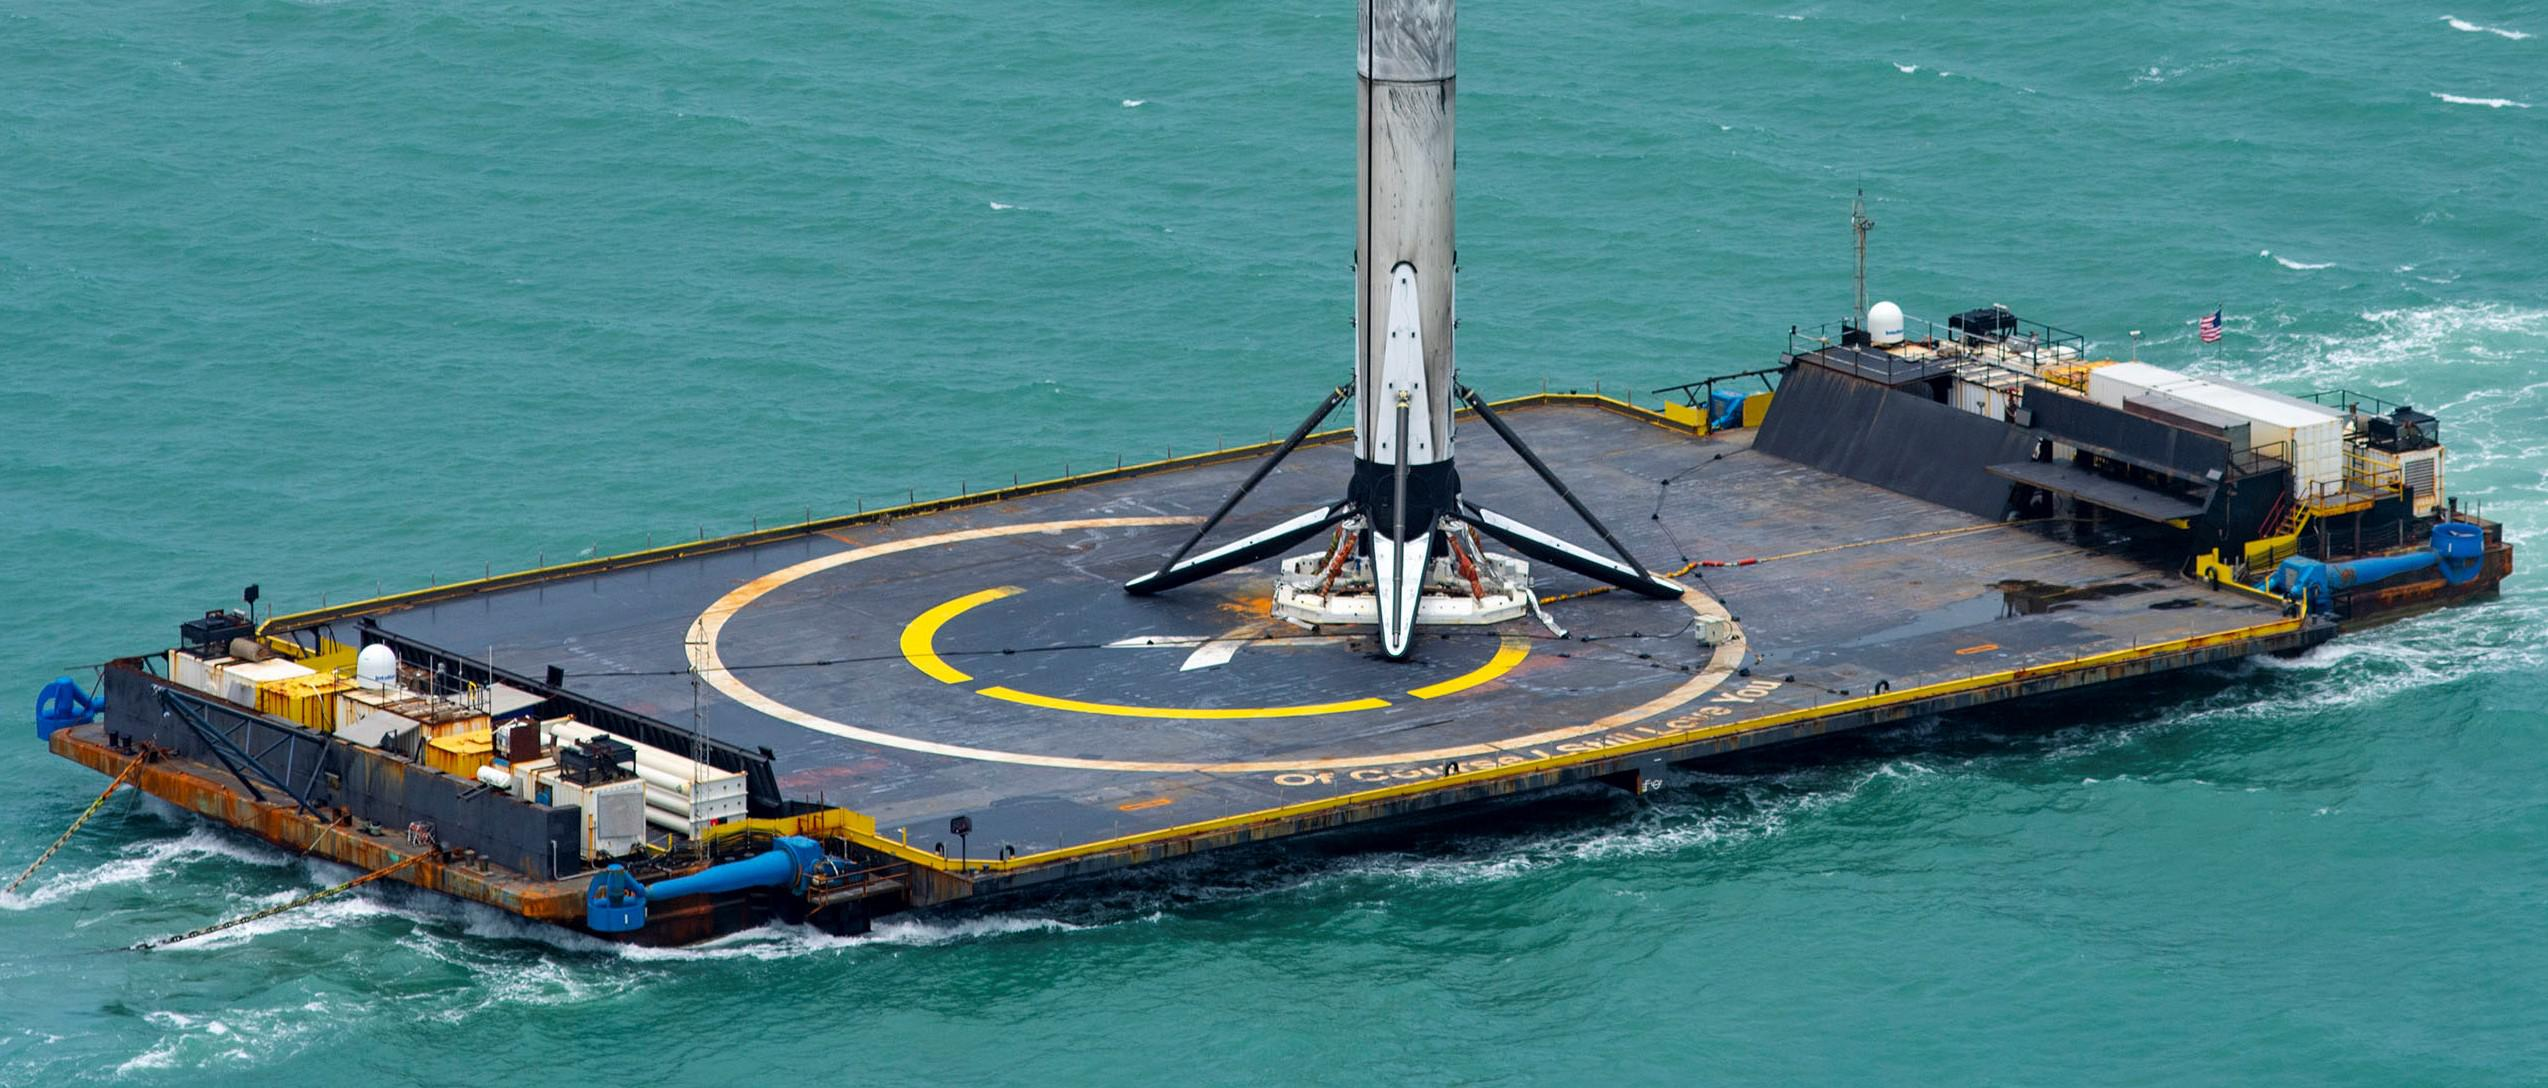 Crew Dragon Demo-2 Falcon 9 B1058 OCISLY recovery 060220 (SpaceX) 3 crop (c)